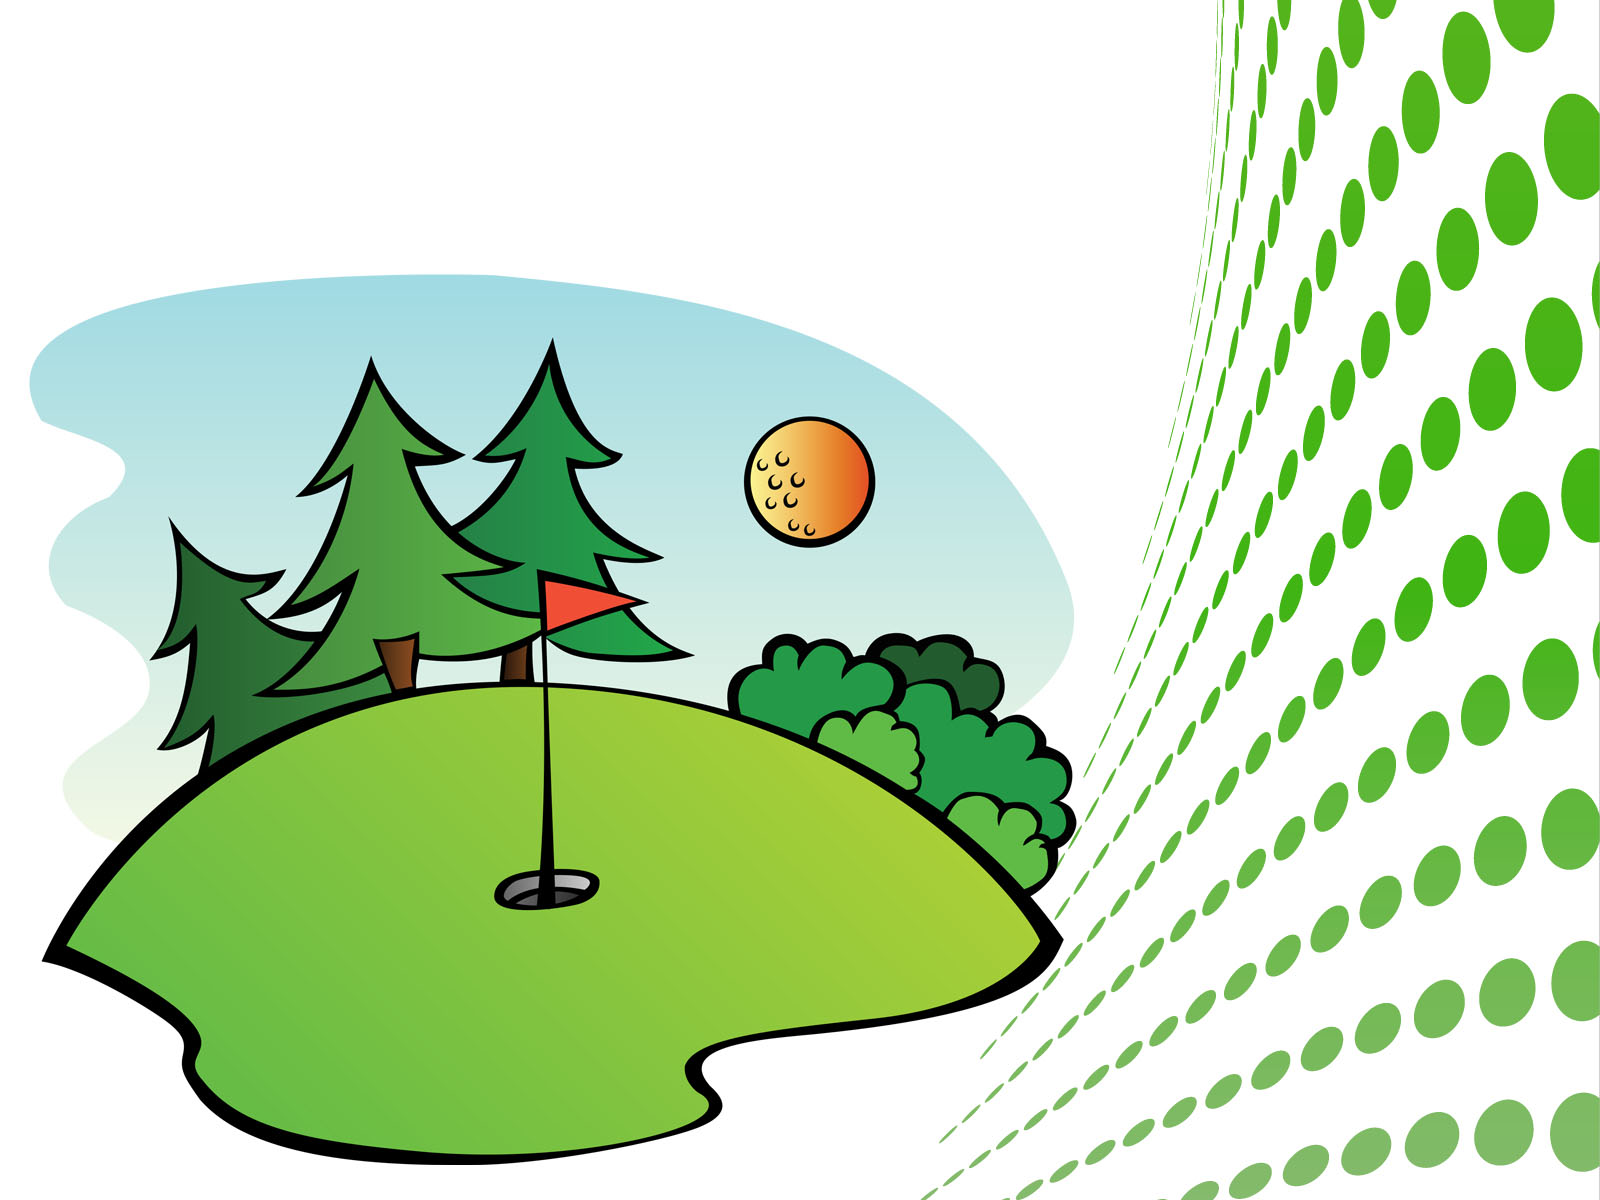 Free Golf Course Cliparts, Download Free Clip Art, Free Clip.